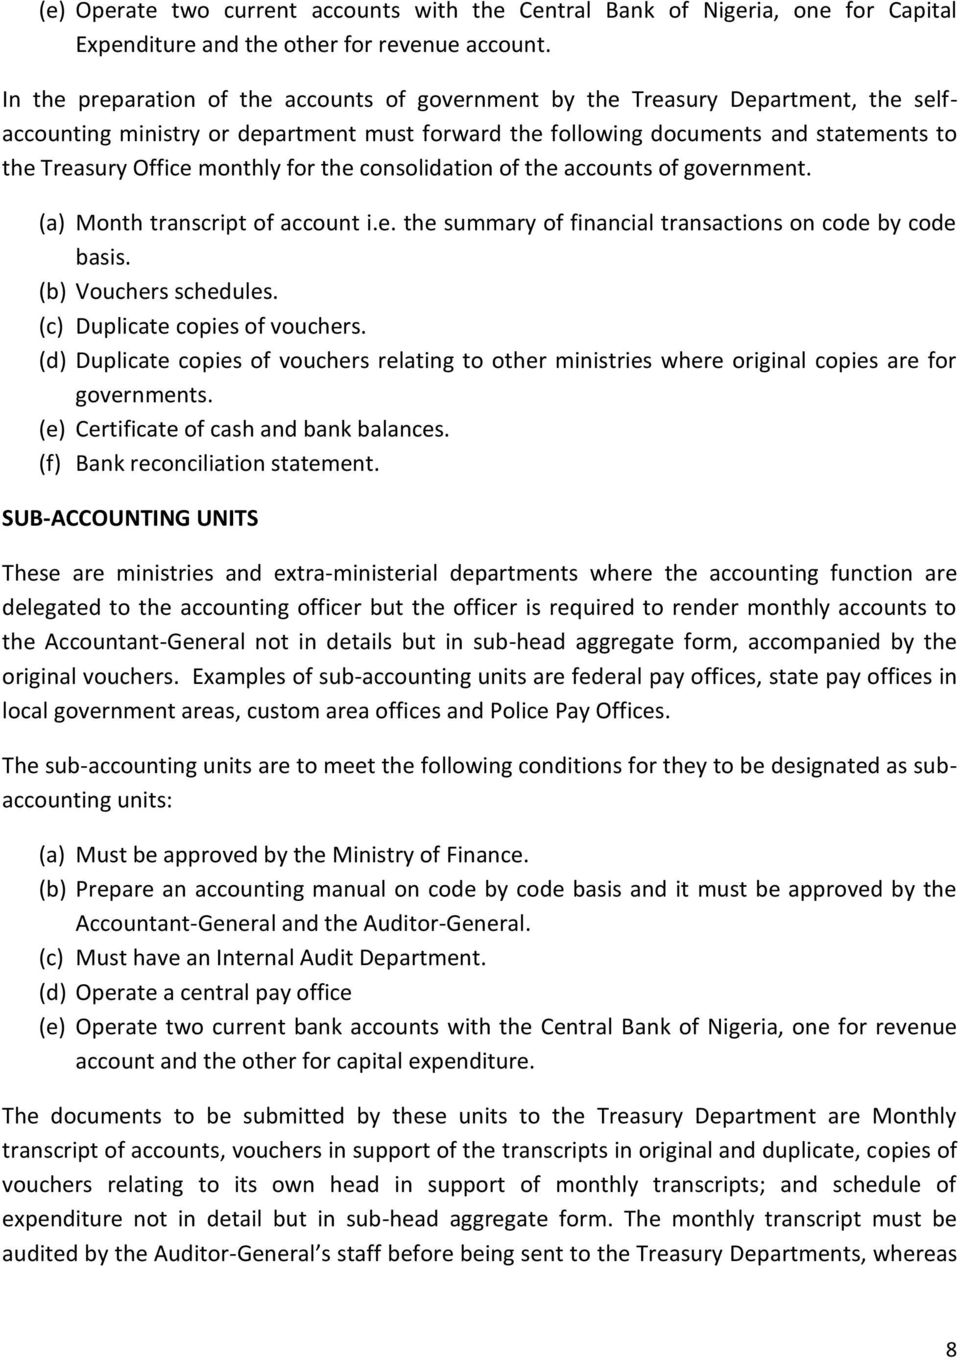 monthly for the consolidation of the accounts of government. (a) Month transcript of account i.e. the summary of financial transactions on code by code basis. (b) Vouchers schedules.